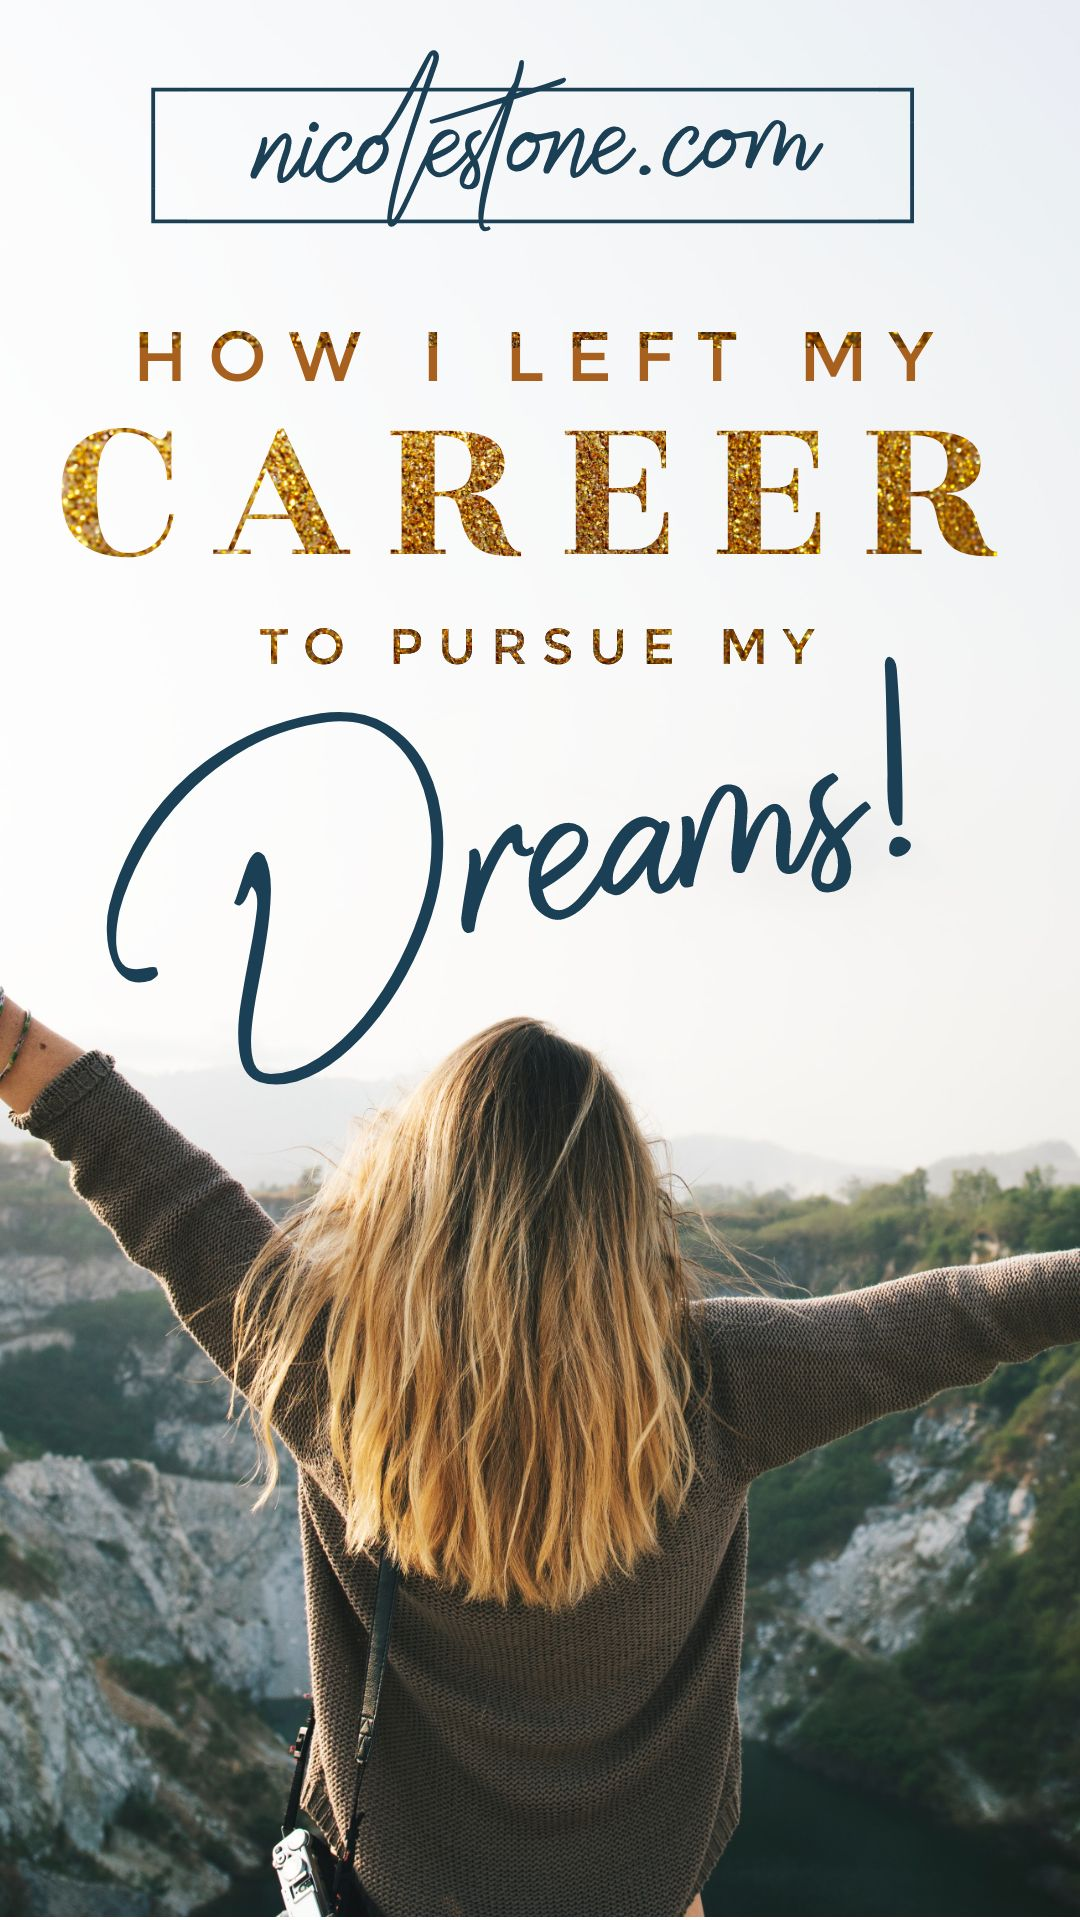 From 9 to 5 to freedom and freelance. Here is my story of how I left security to travel, freelance, and run my own adventure. #career #profession #blogging #freelance #workfromhome